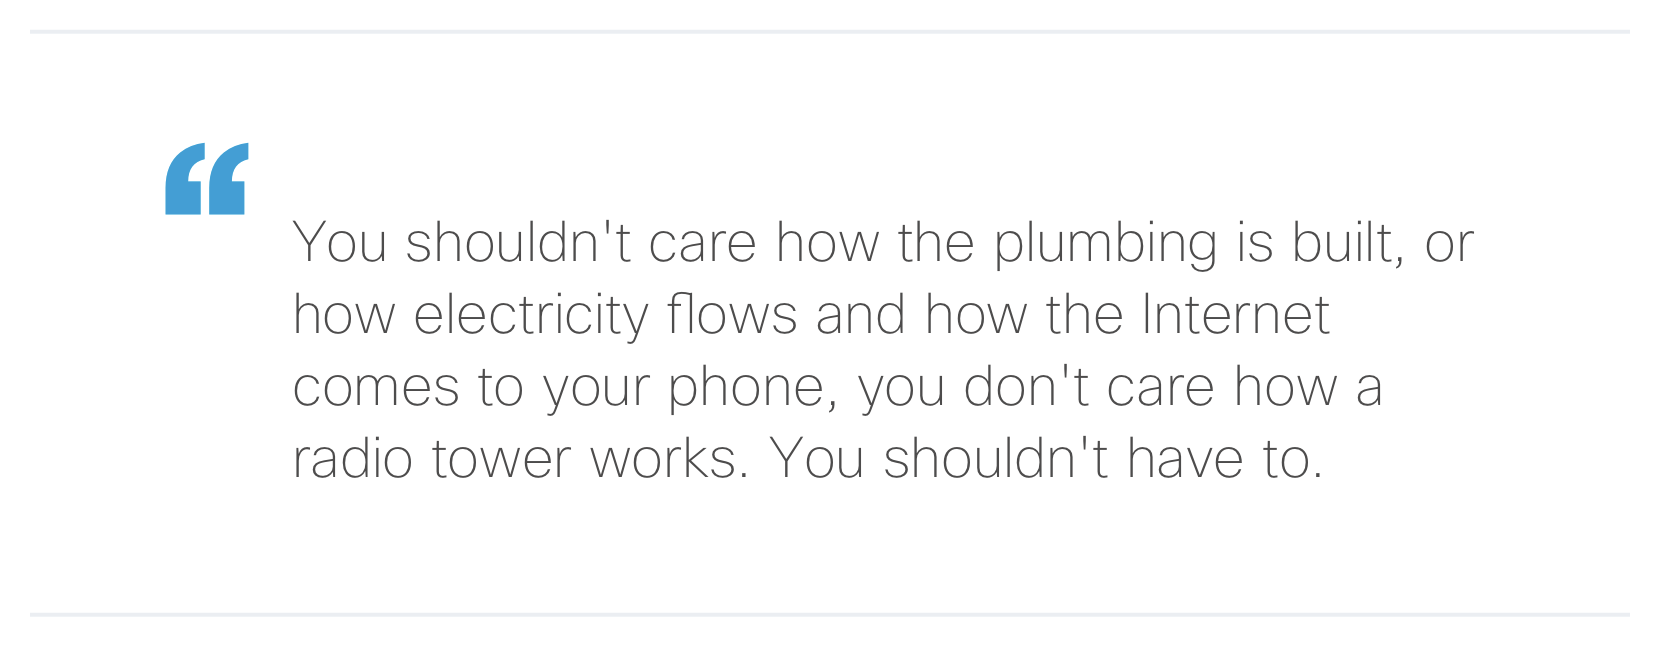 """""""You shouldn't care how the plumbing is built, or how electricity flows and how the Internet comes to your phone, you don't care how a radio tower works. You shouldn't have to."""""""